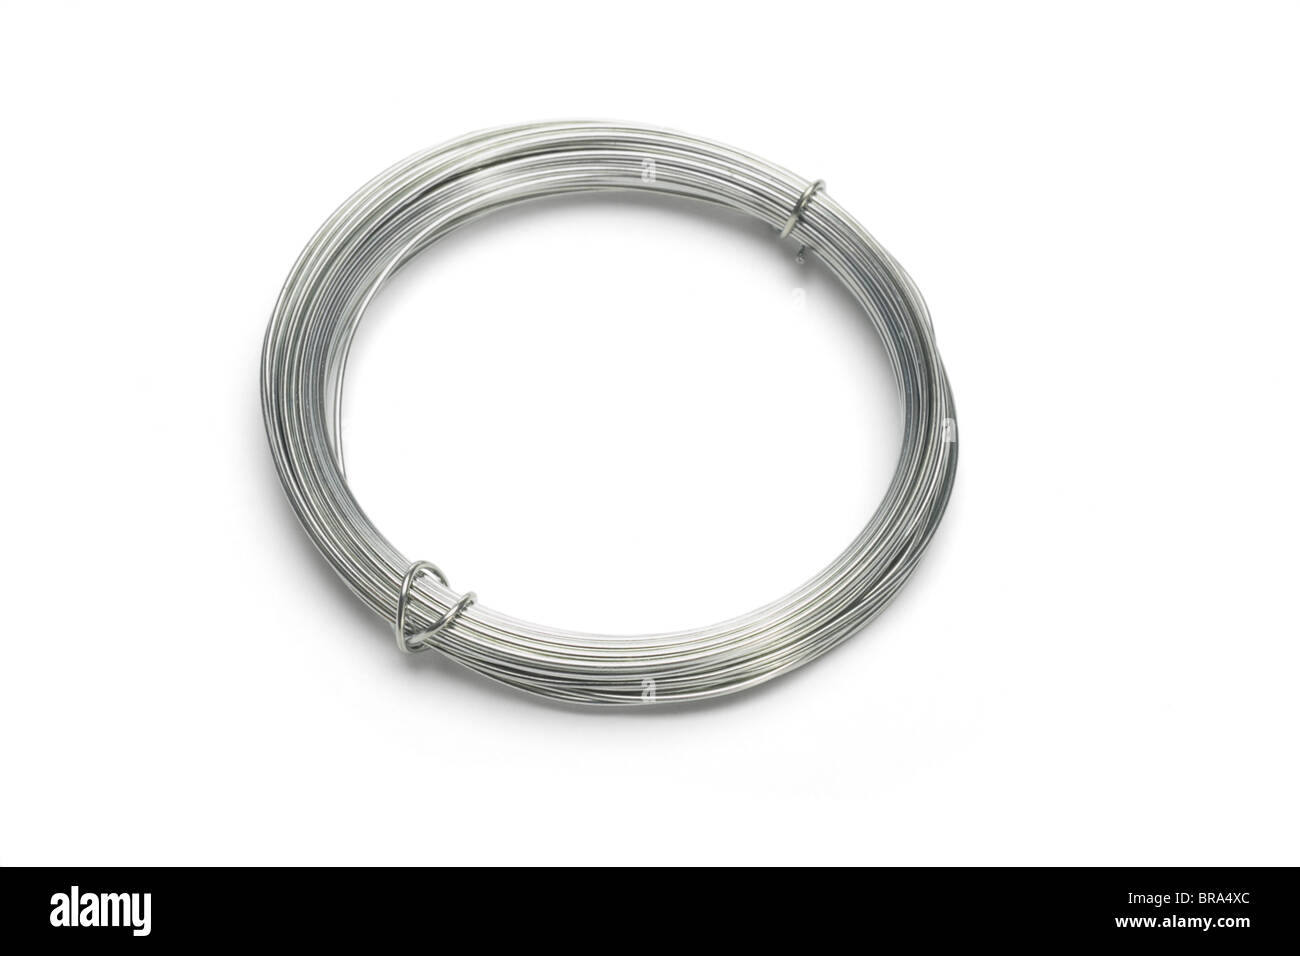 Smalll roll of galvanized wires on white background Stock Photo